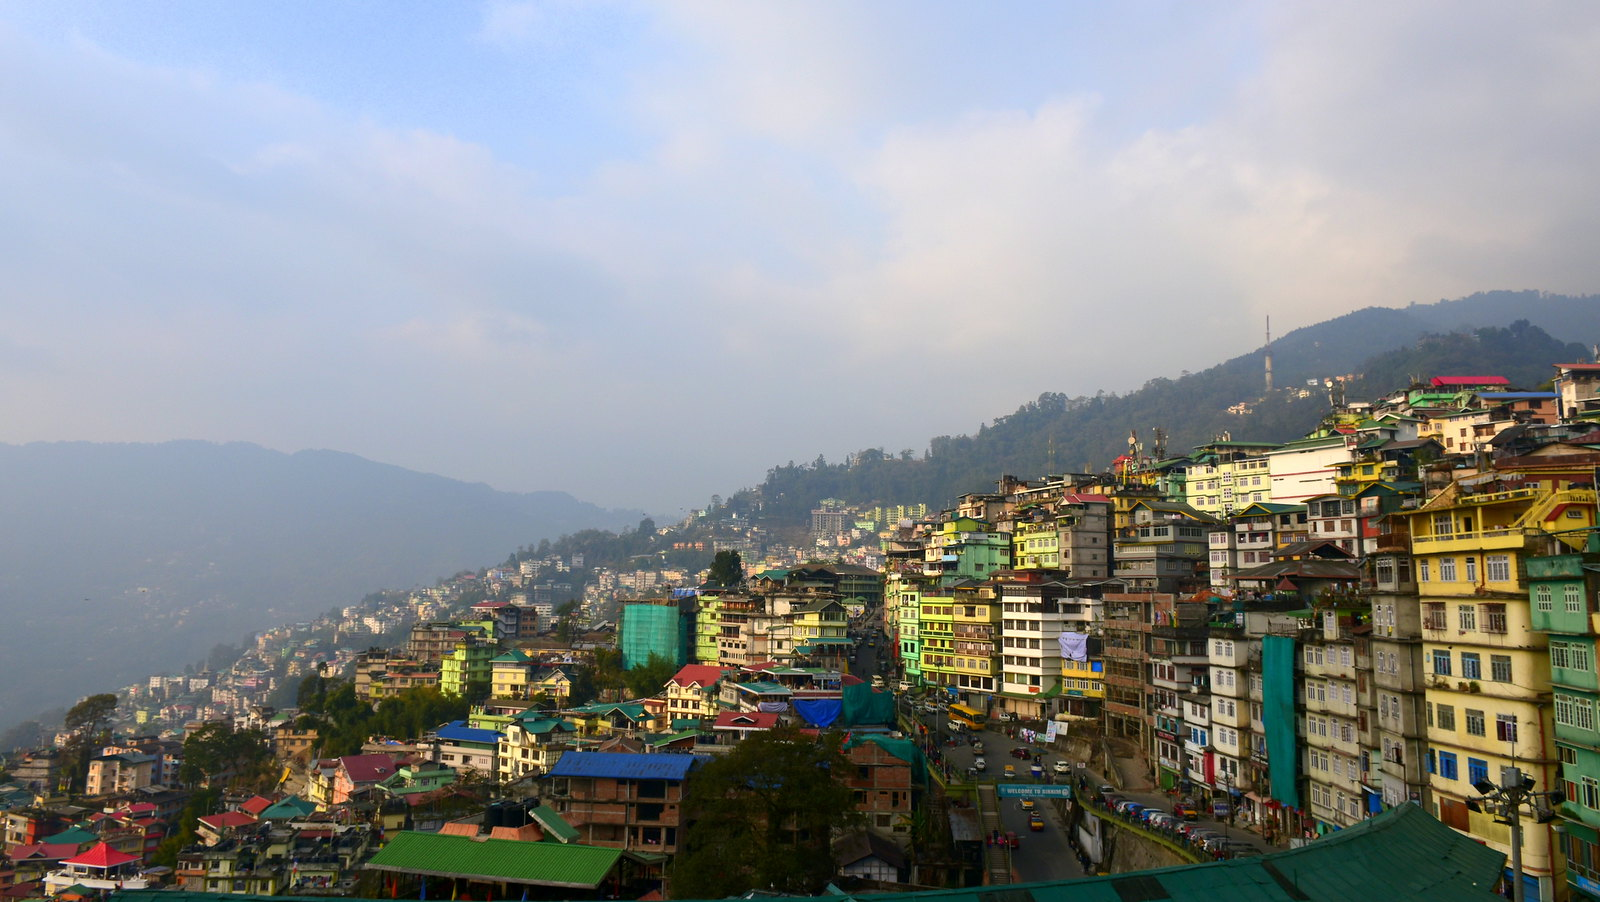 Gangtok, the capital of Sikkim. Photo: Rajib Ghosh/Flickr